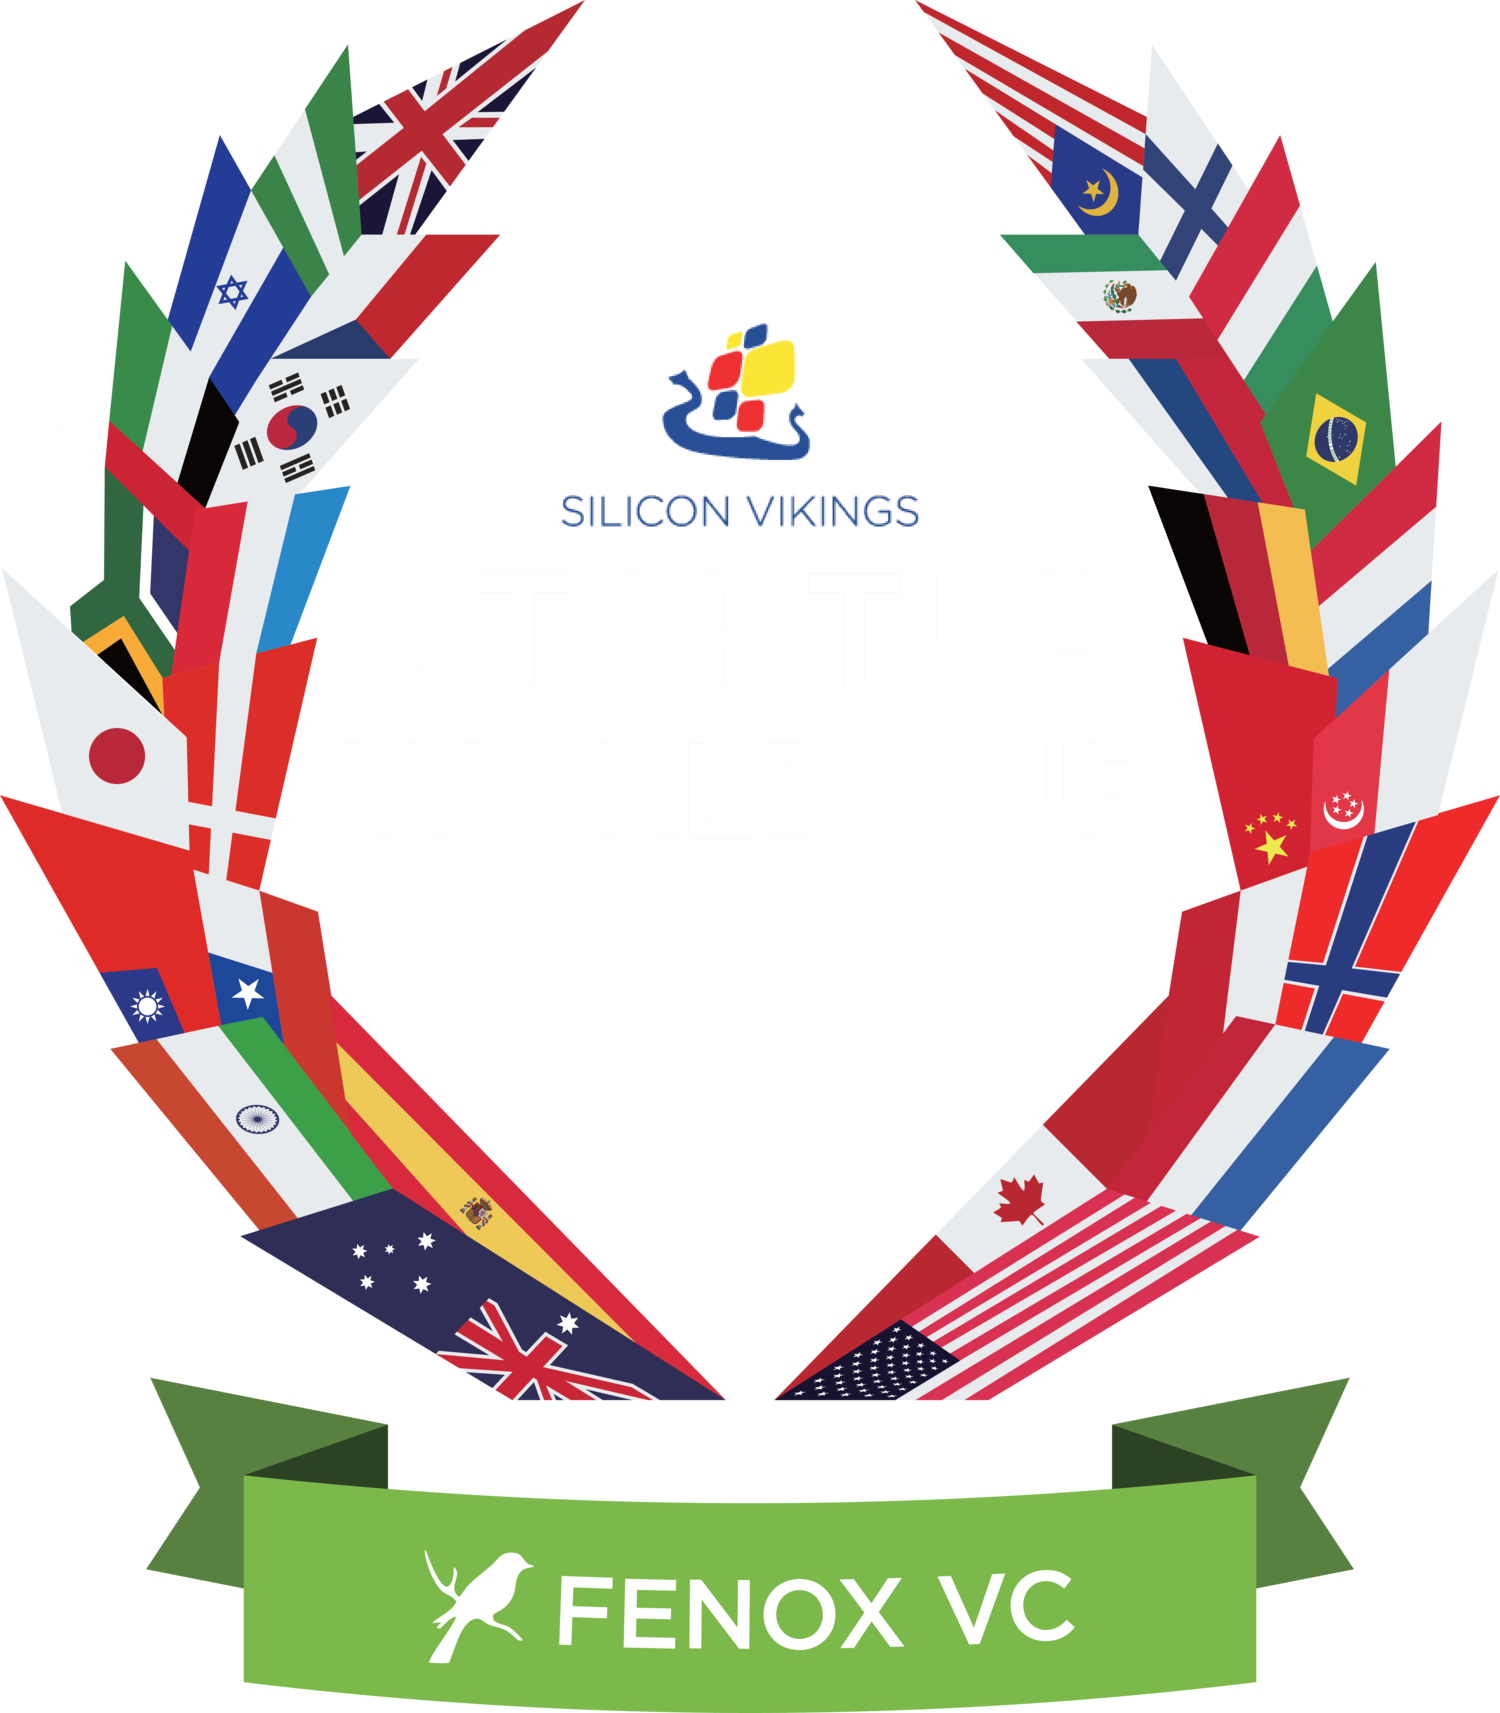 Startup World Cup Finland